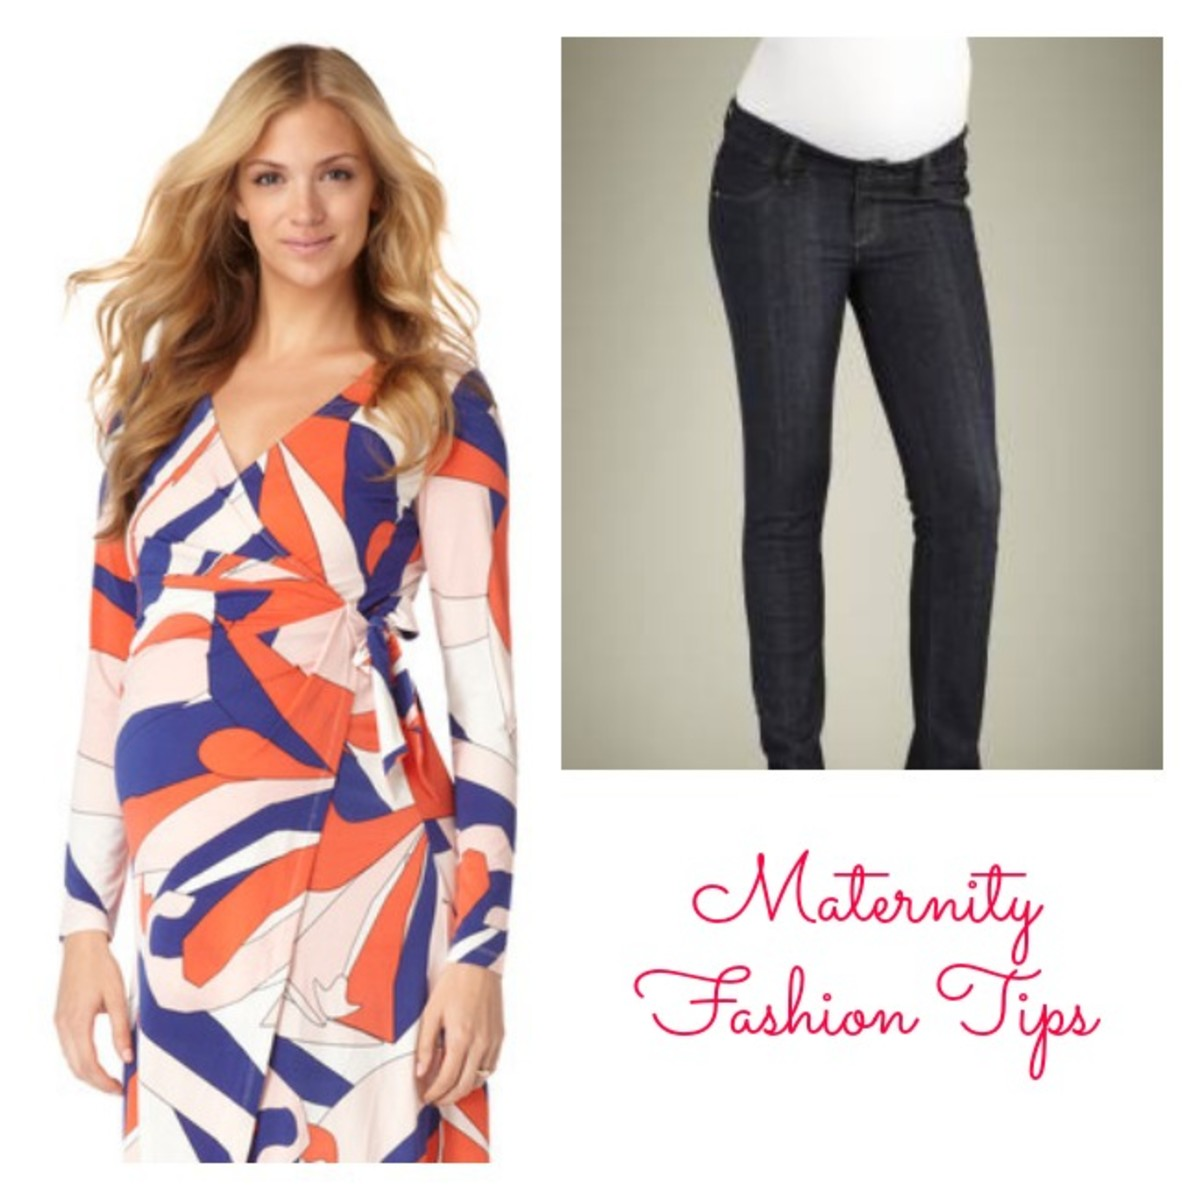 Maternity Fashion Tips, maternity tips